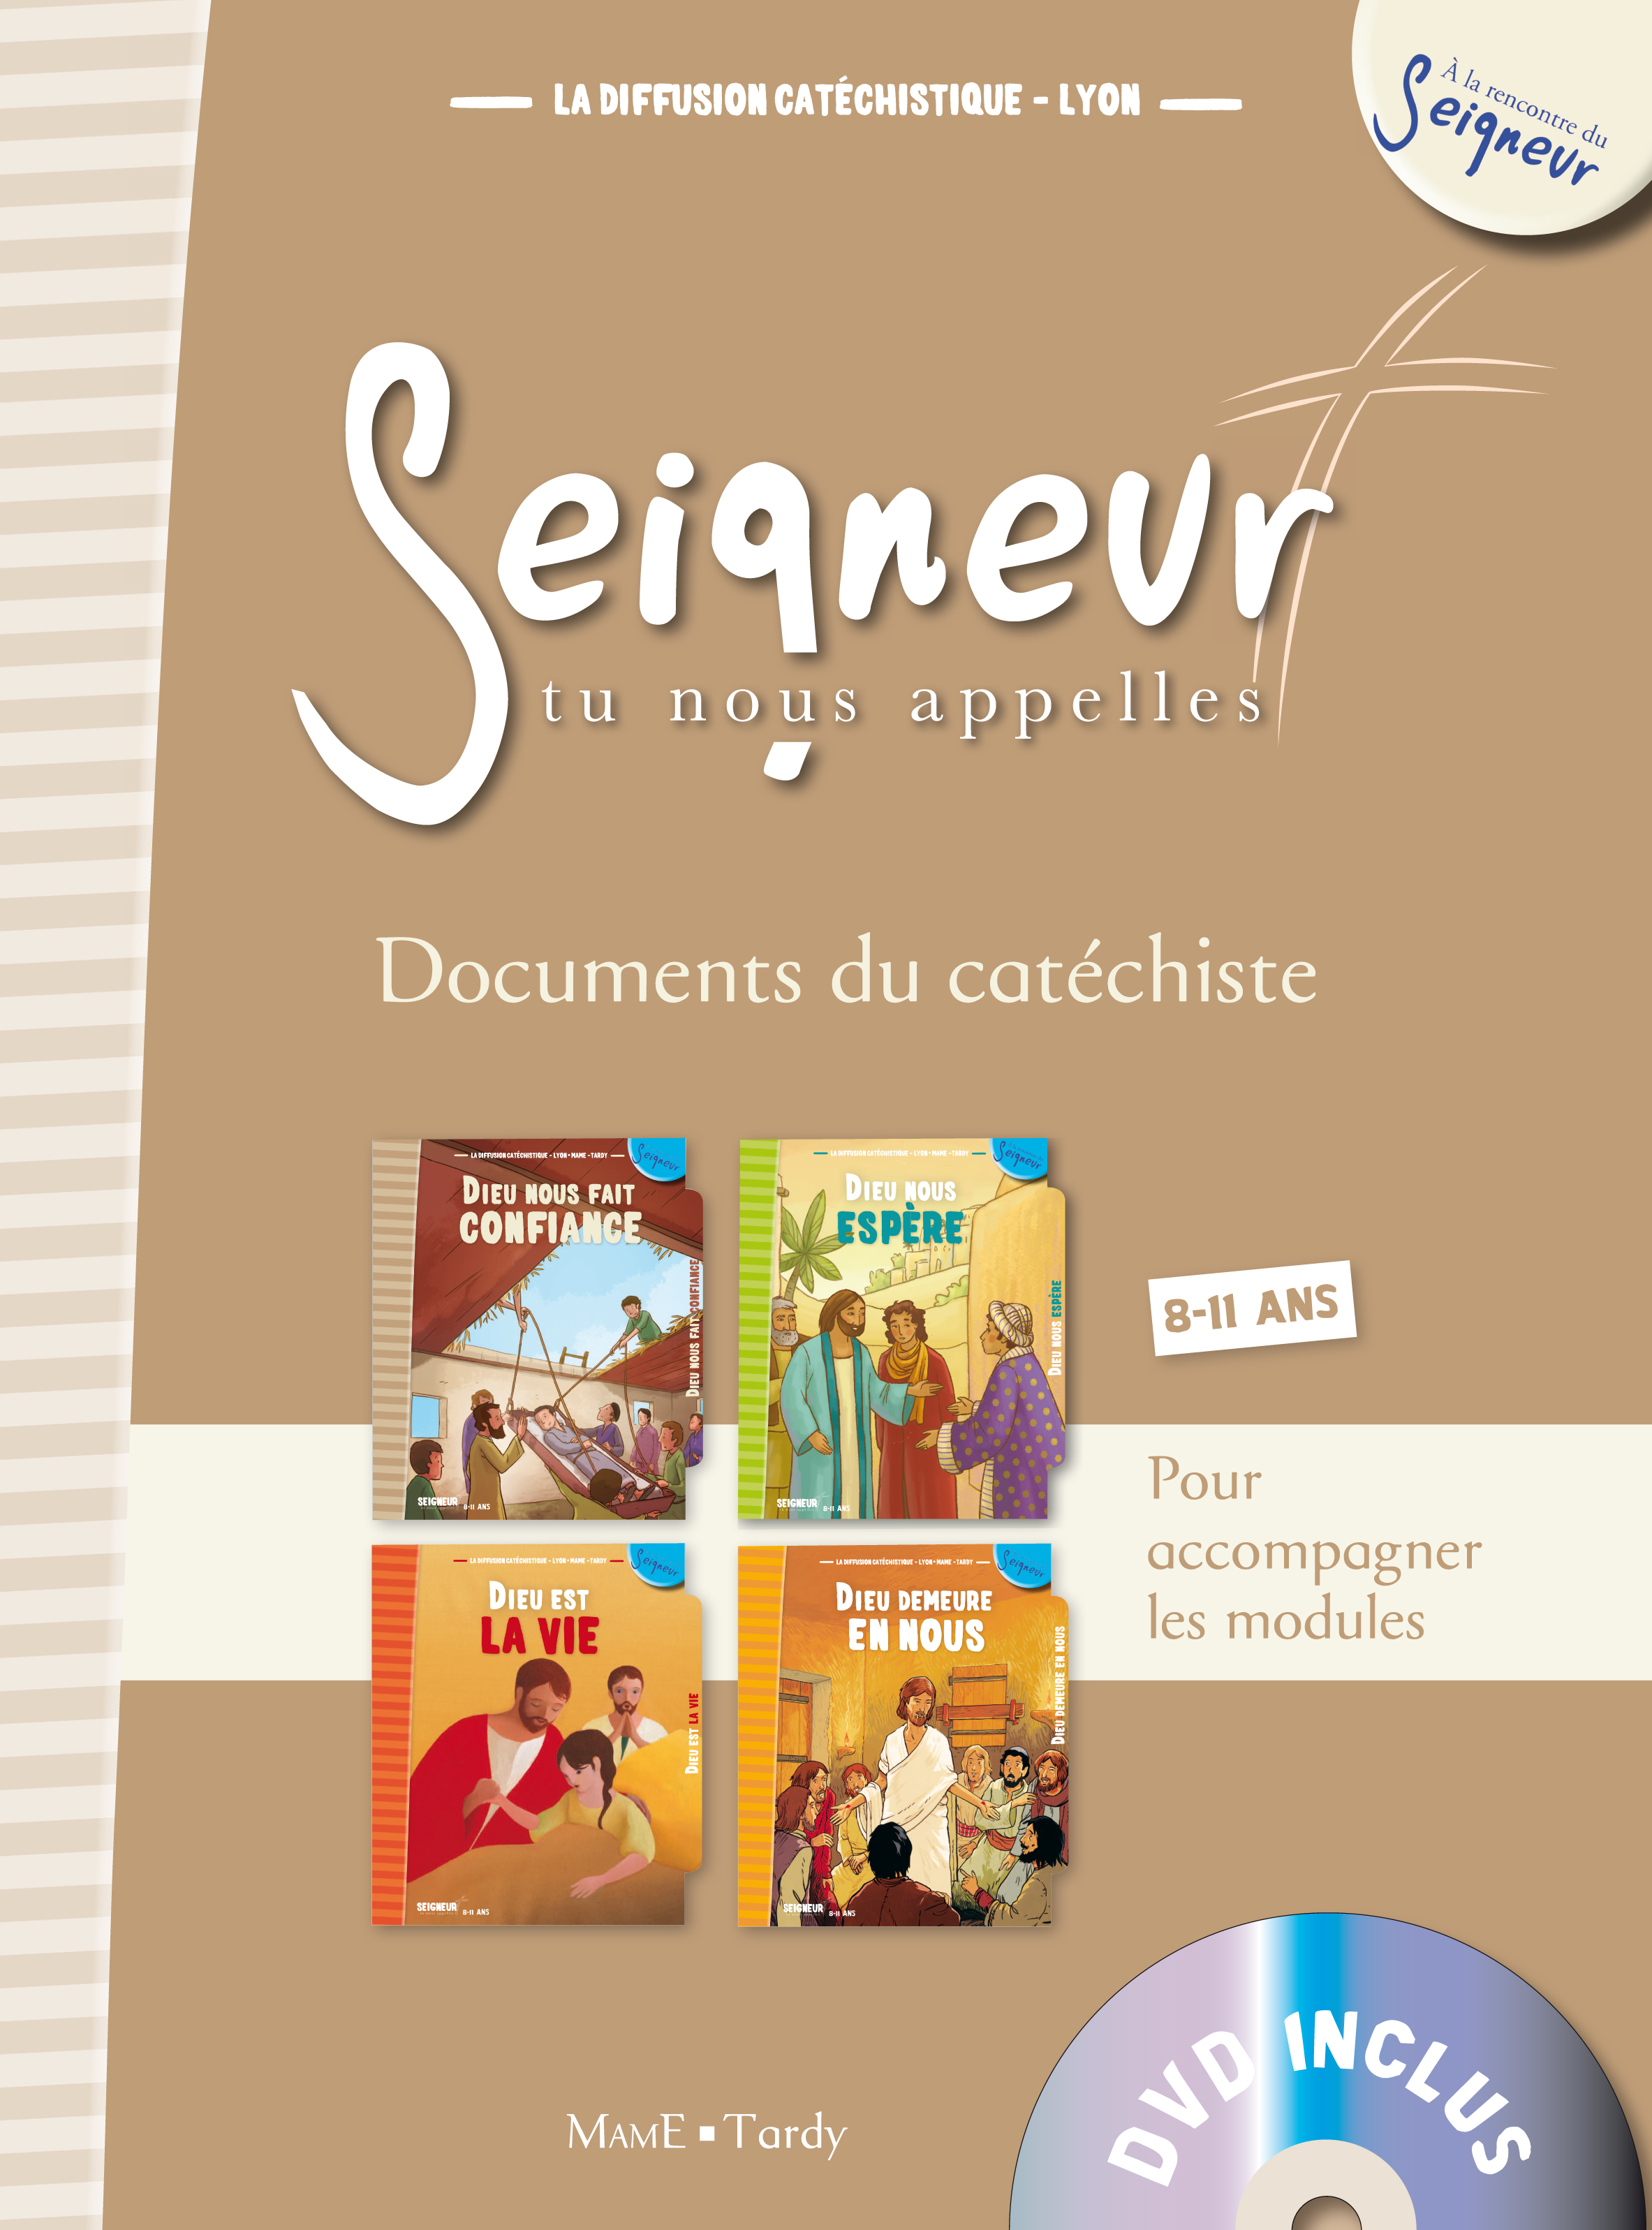 8-11 ANS - DOCUMENT DU CATECHISTE MARRON + DVD - MODULES 9 A 12